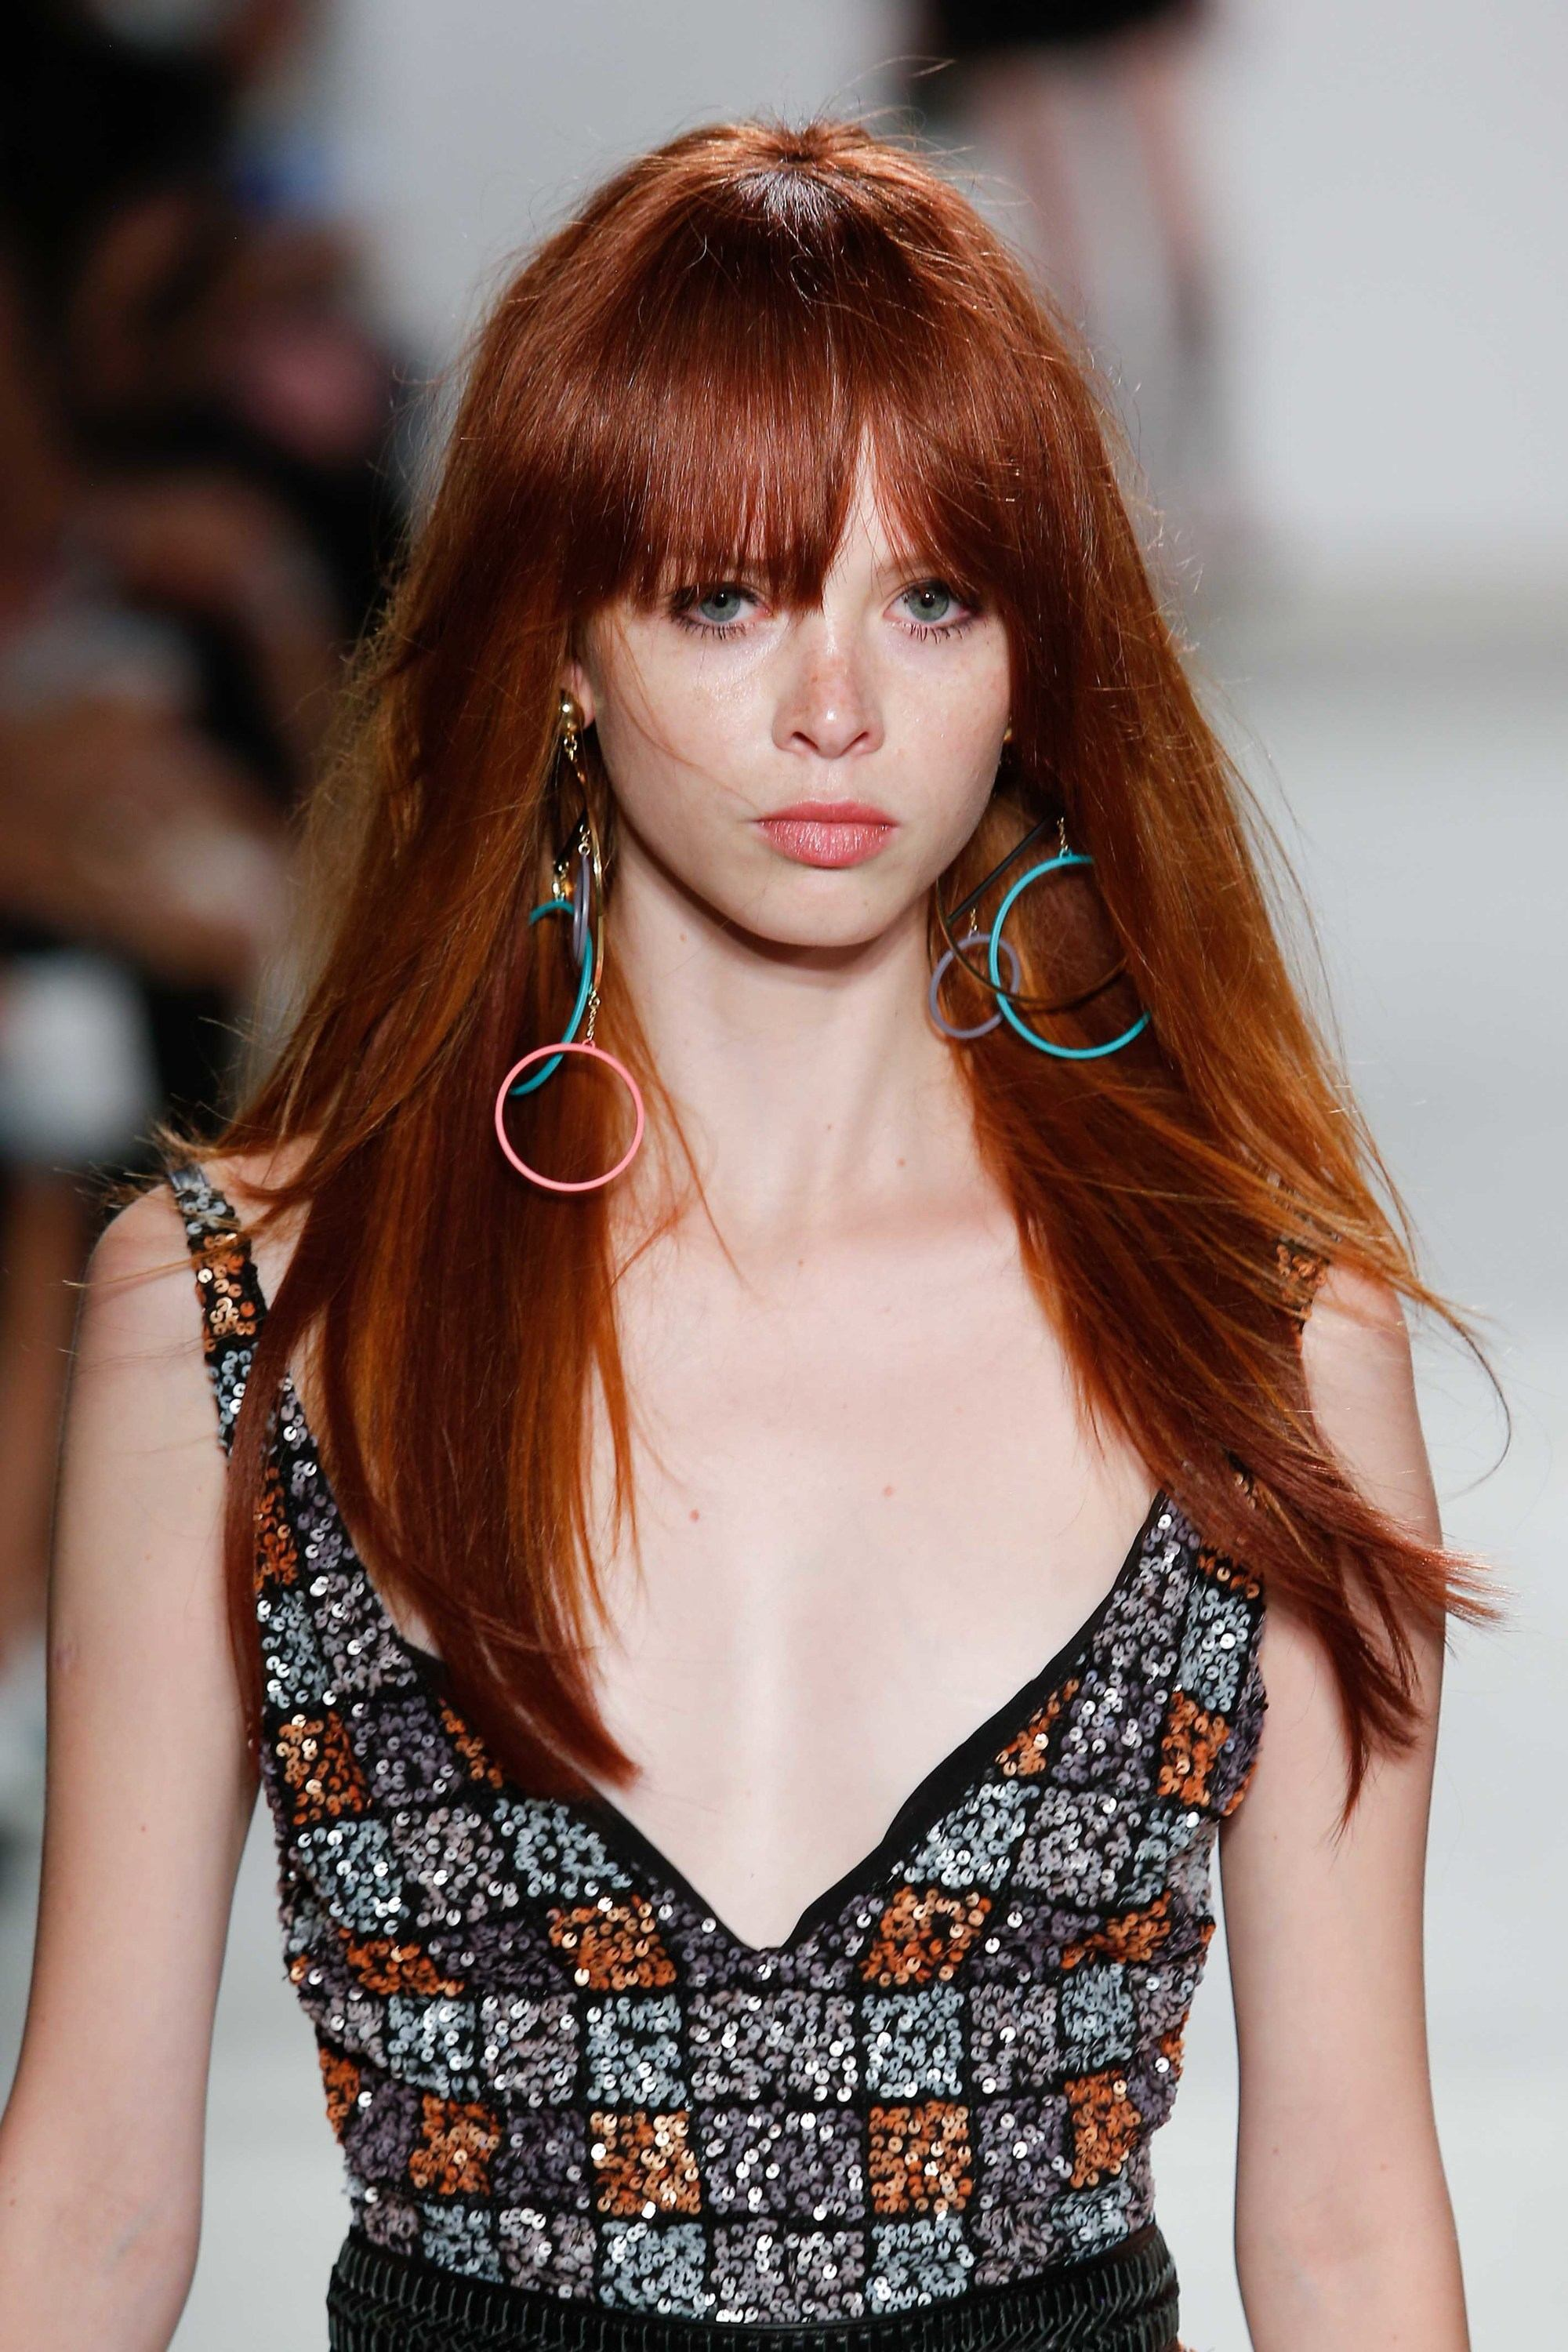 Dark Red Hair 10 Shades to Try Out  5 Ways to Wear Them